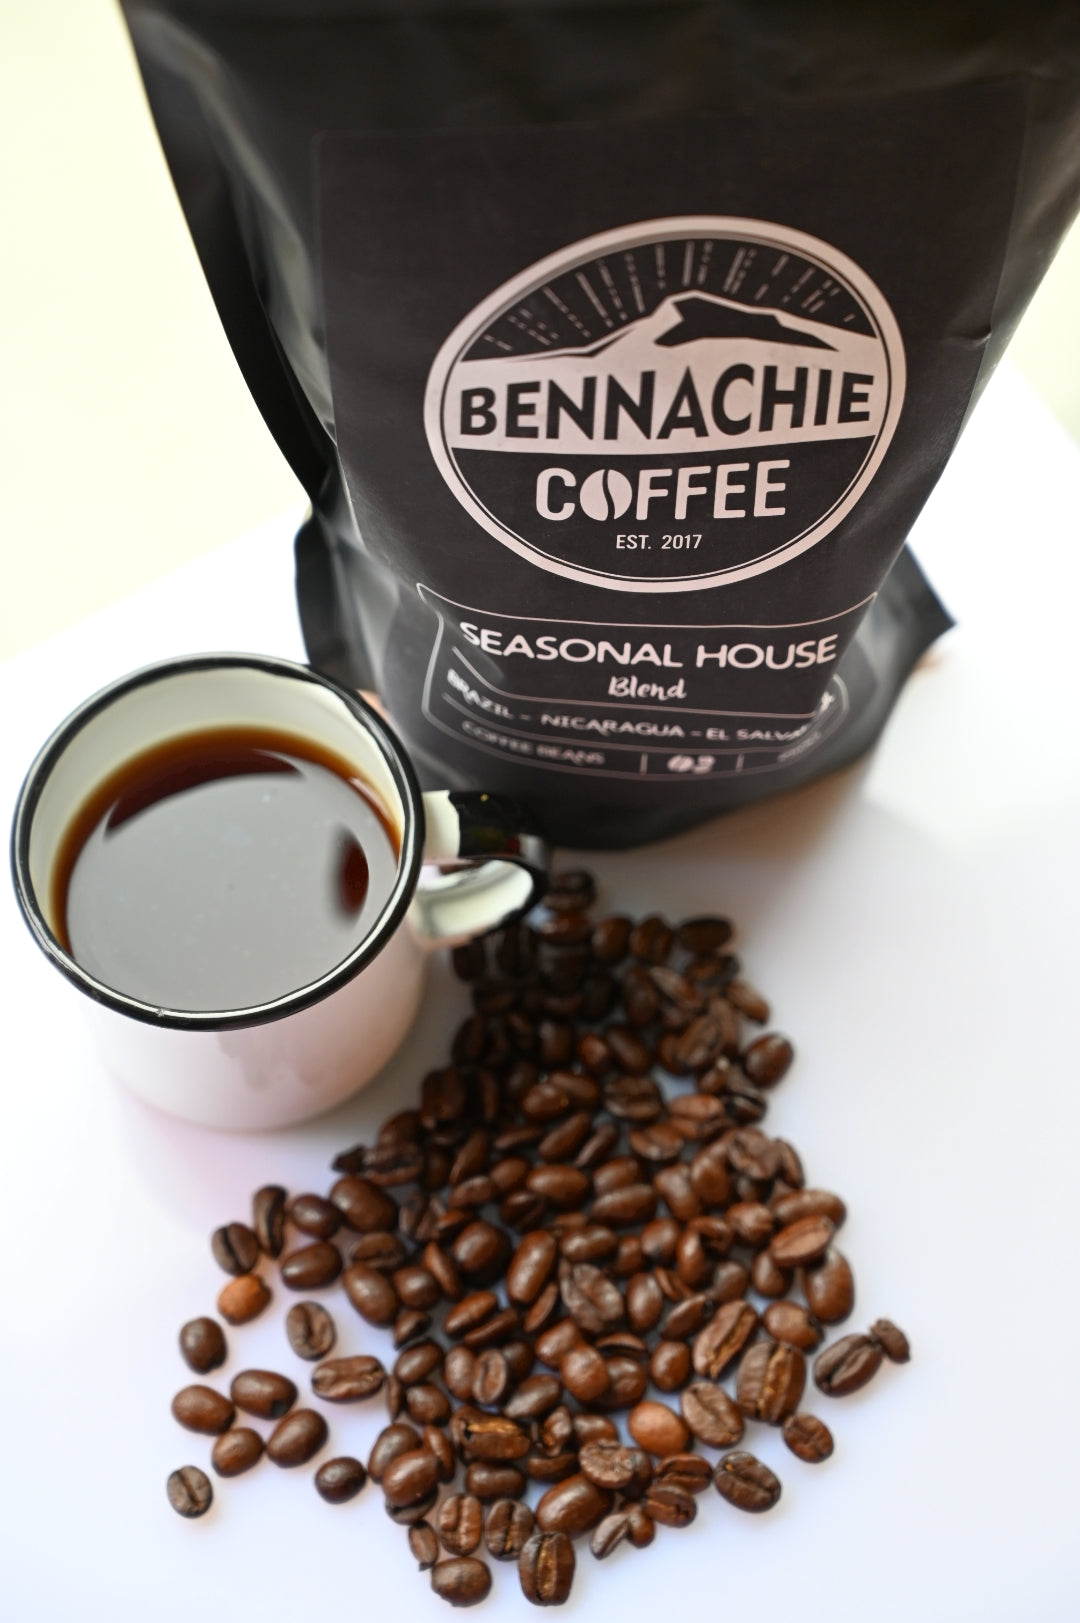 BENNACHIE COFFEE HAS BEEN PROVIDING NORTH-EAST CONSUMERS WITH GREAT TASTING COFFEE SINCE ITS INCEPTION